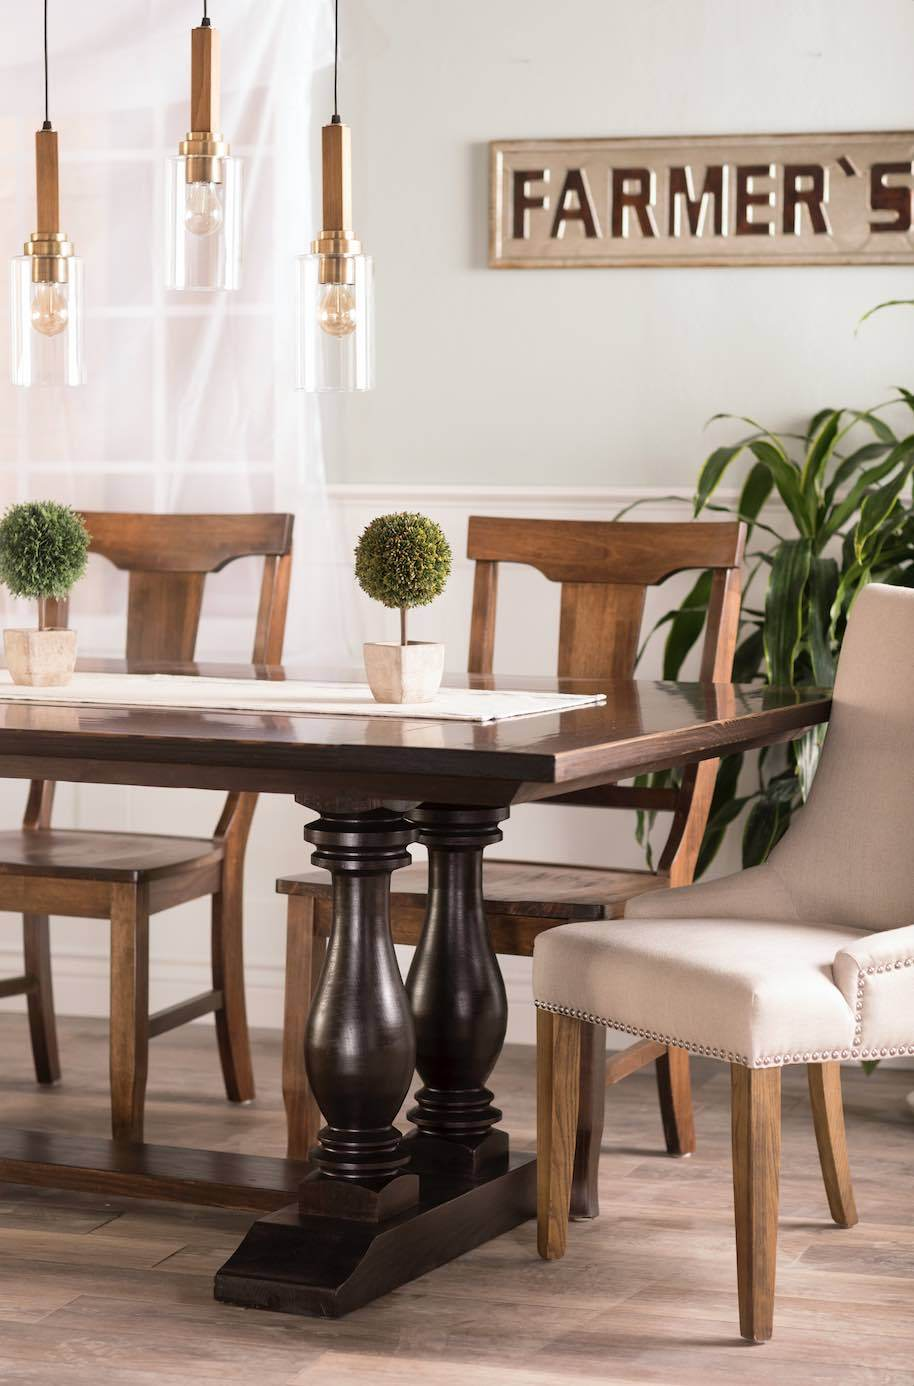 Grace solid wood hand finished dining chair, pictured with our Heritage Trestle Table, Ashford Linen Dining Chairs, and Rustic Wood Pendant Chandelier.